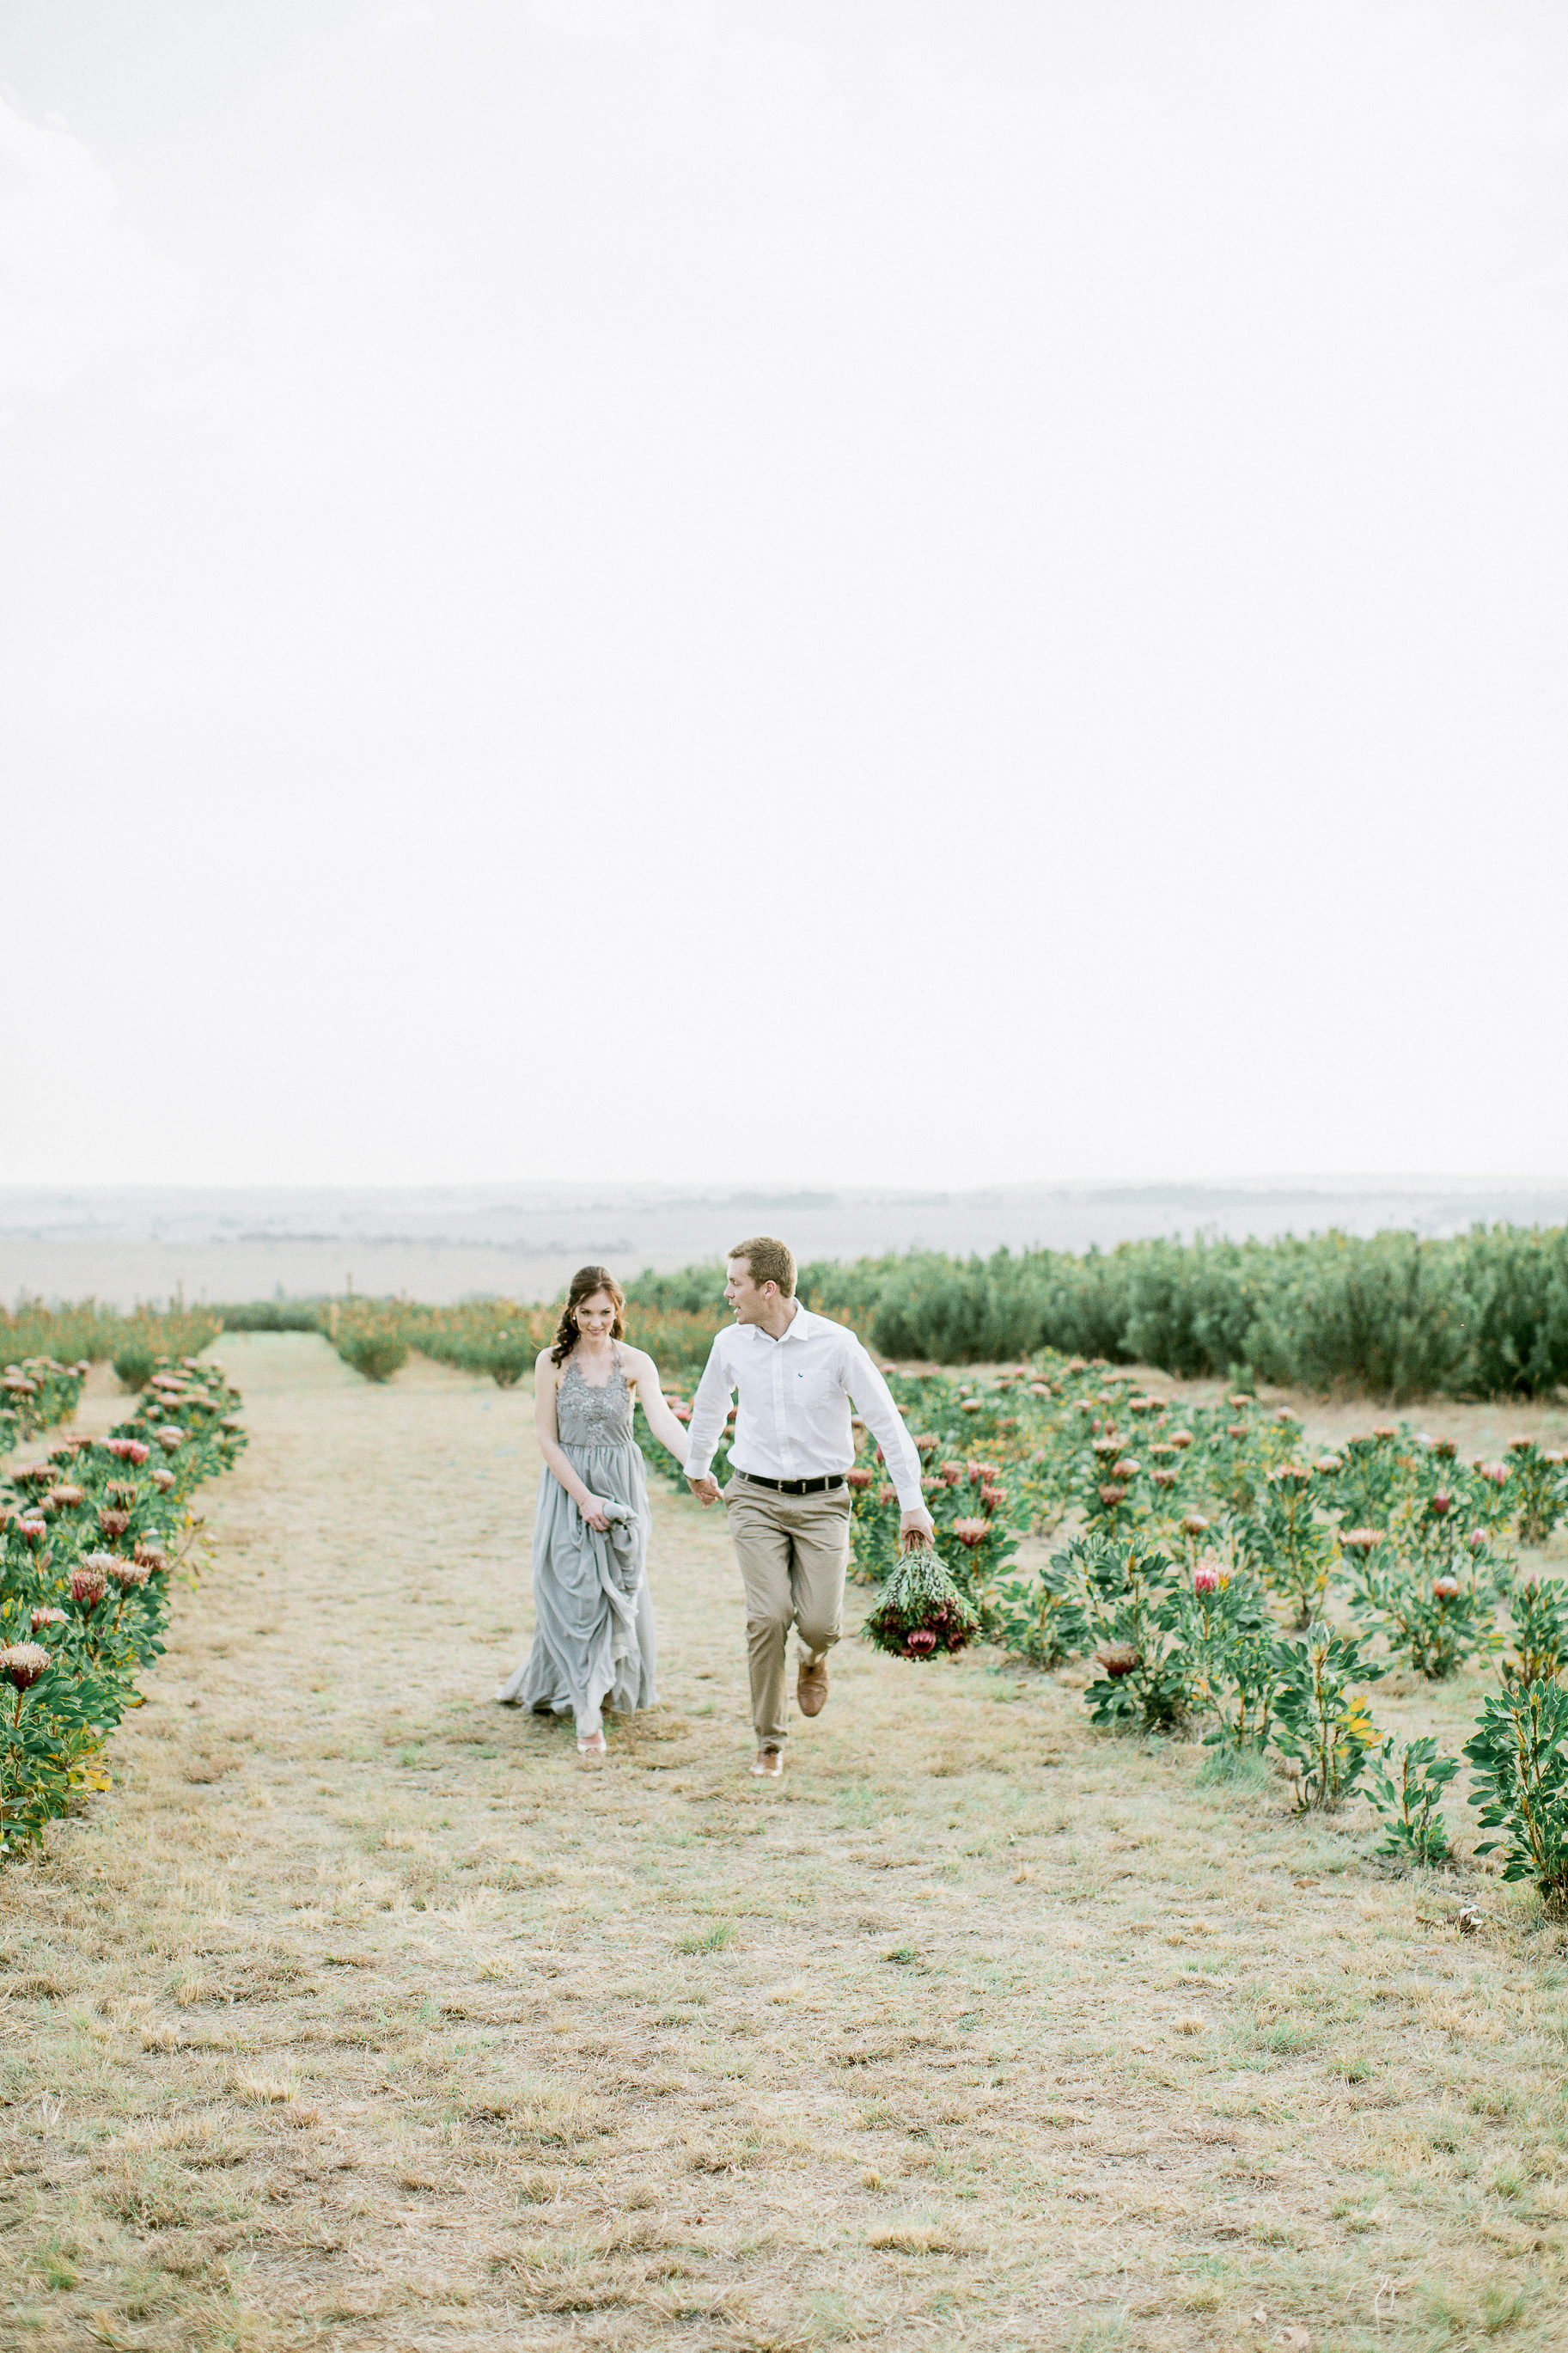 South africa wedding photographer clareece smit photography52.jpg